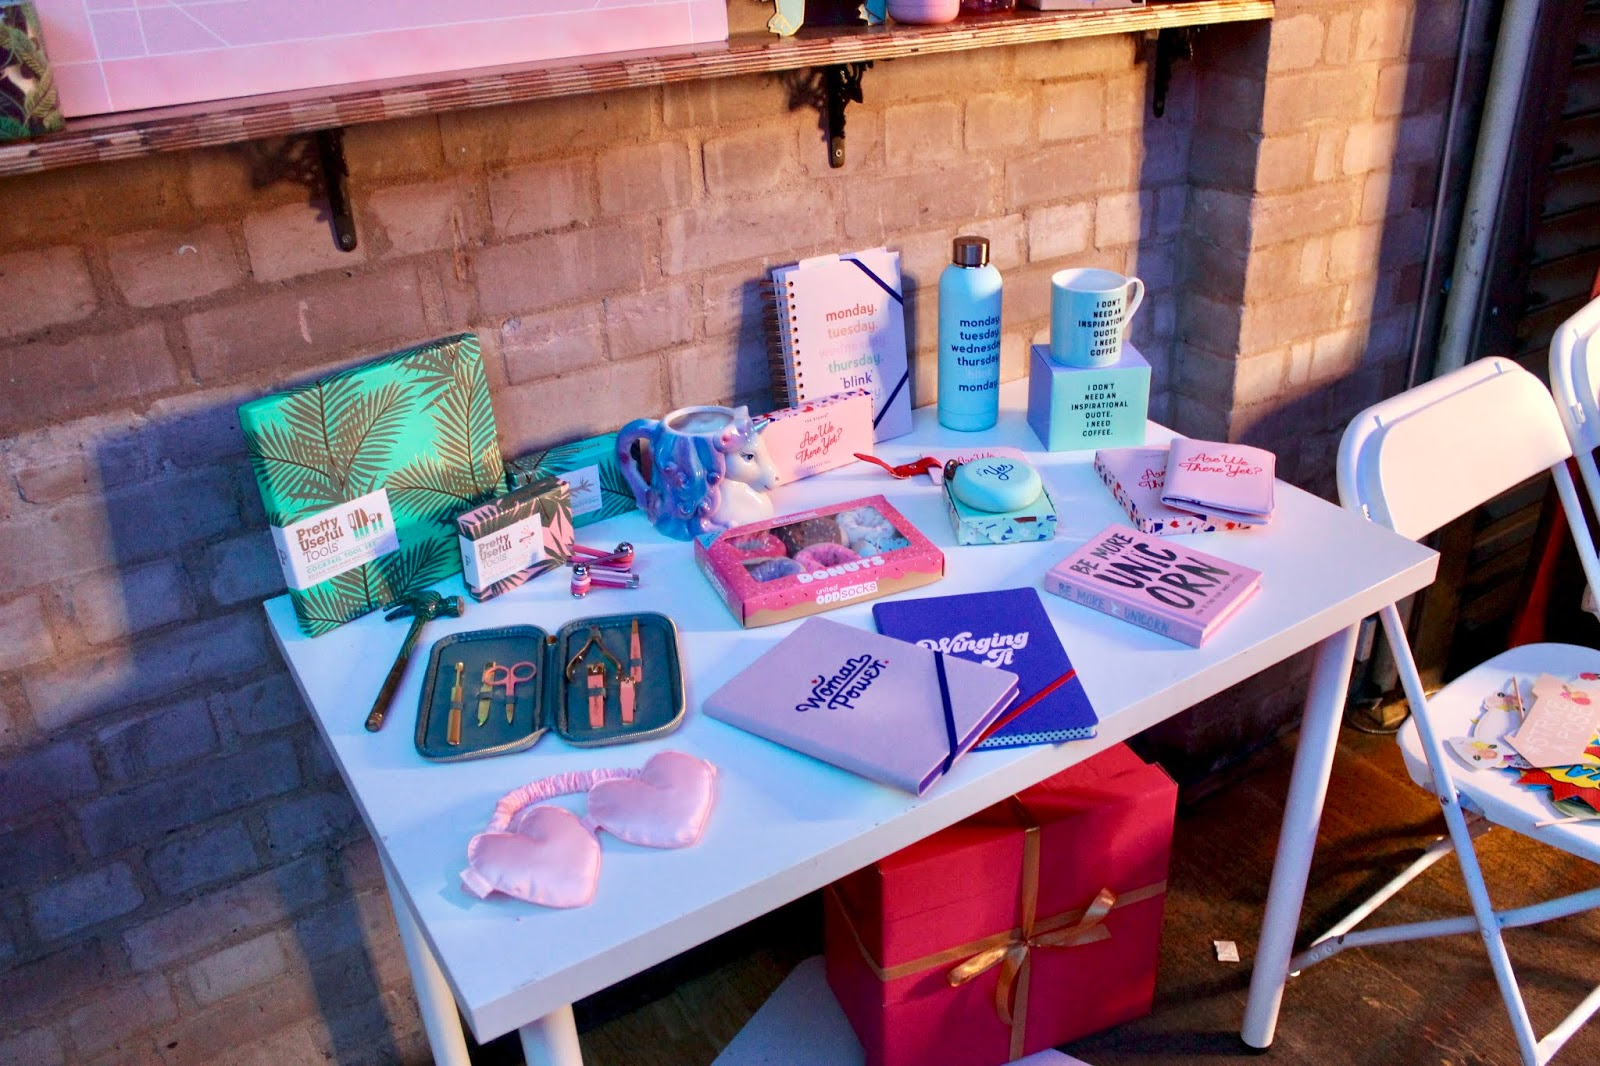 A selection of Prezzybox items on a table at the Jingle Mingle event